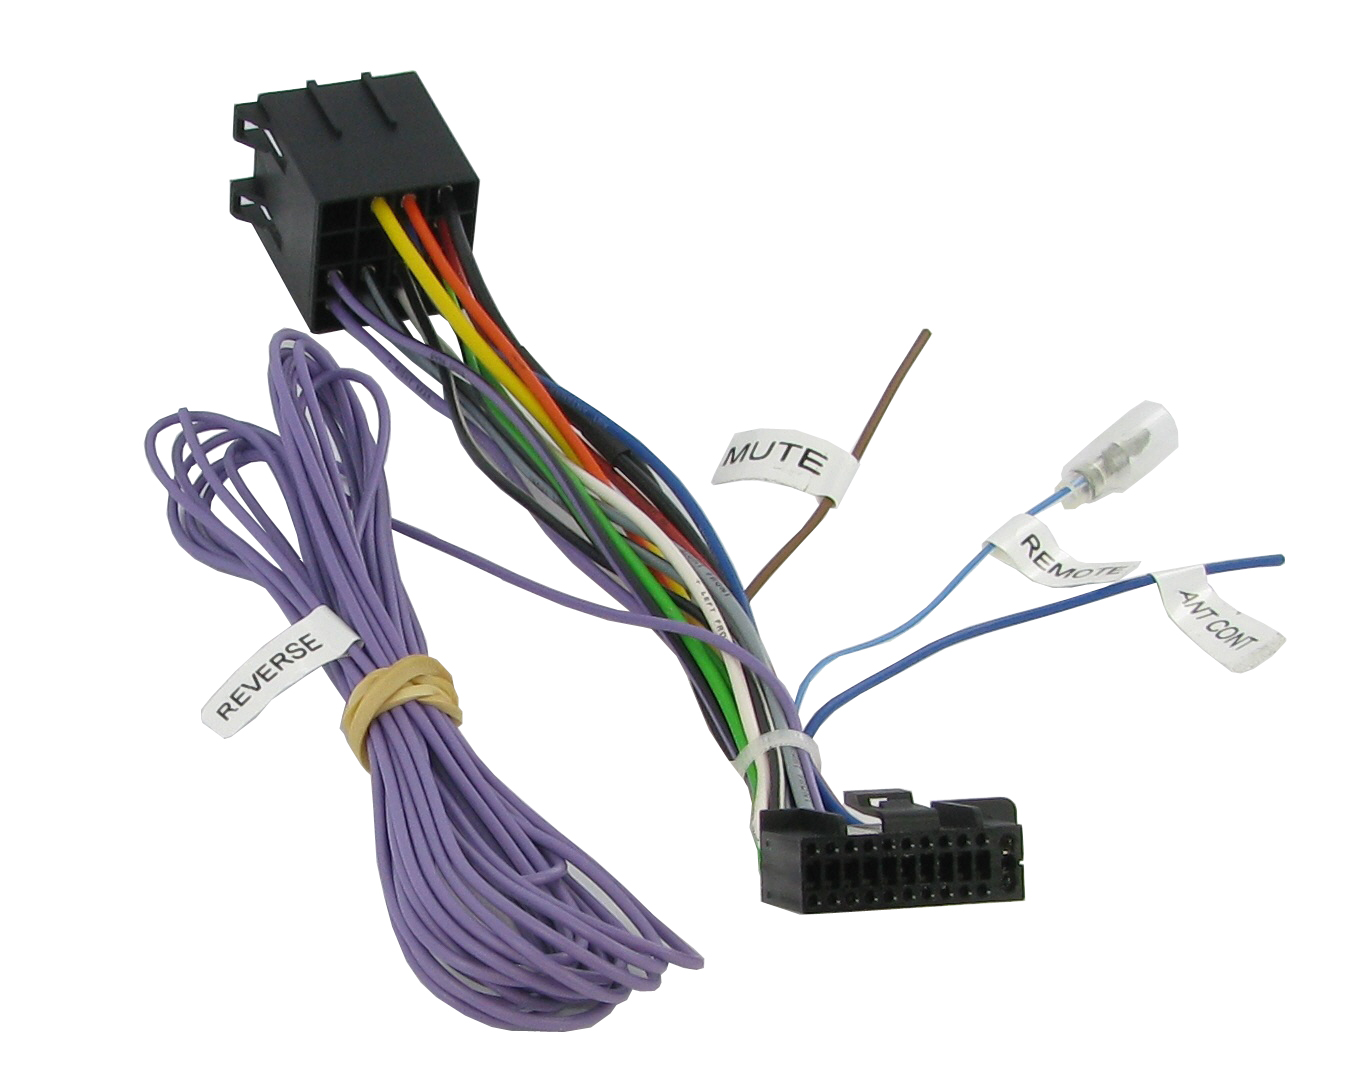 Kenwood Kdc 316s Wiring Diagram Wiring Diagram